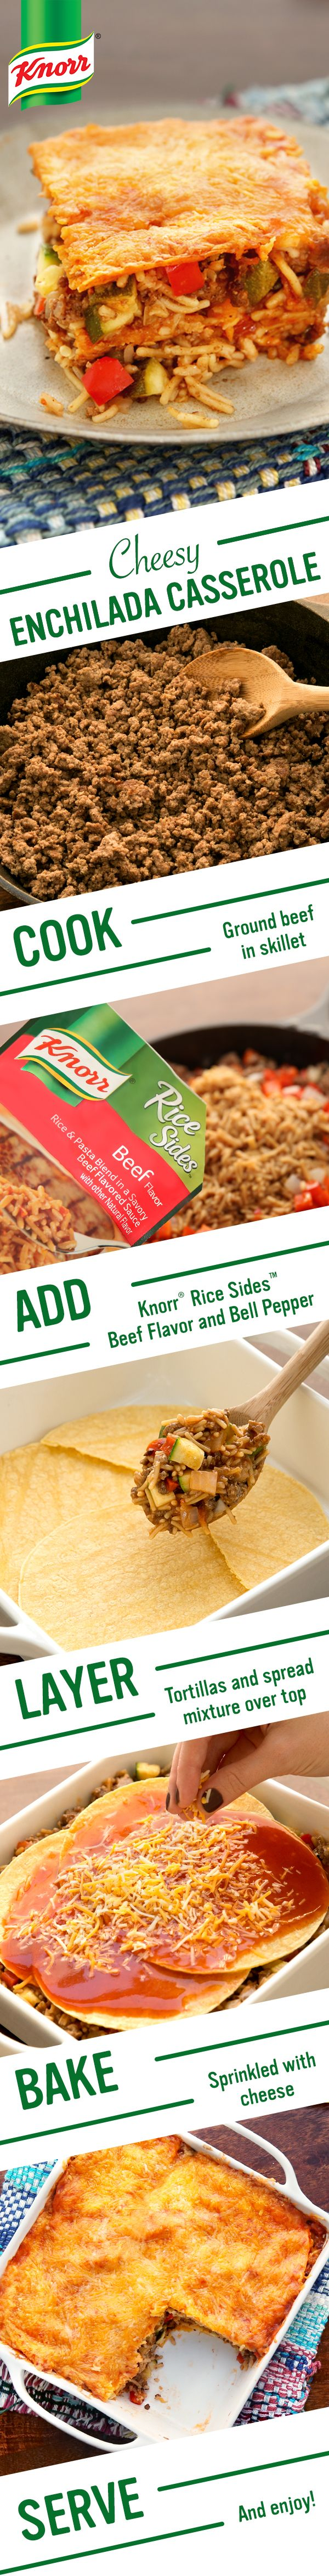 Celebrate Cinco de Mayo with Knorr's flavorful Beef & Cheese Enchilada Casserole. Follow these easy steps for a delicious family supper: 1. Cook ground beef & onion 2. Add Knorr® Rice Sides™ - Beef flavor & bell pepper. Stir in zucchini & enchilada sauce 3. Layer tortillas, spread mixture, sprinkle cheese, & bake. Serve & enjoy!